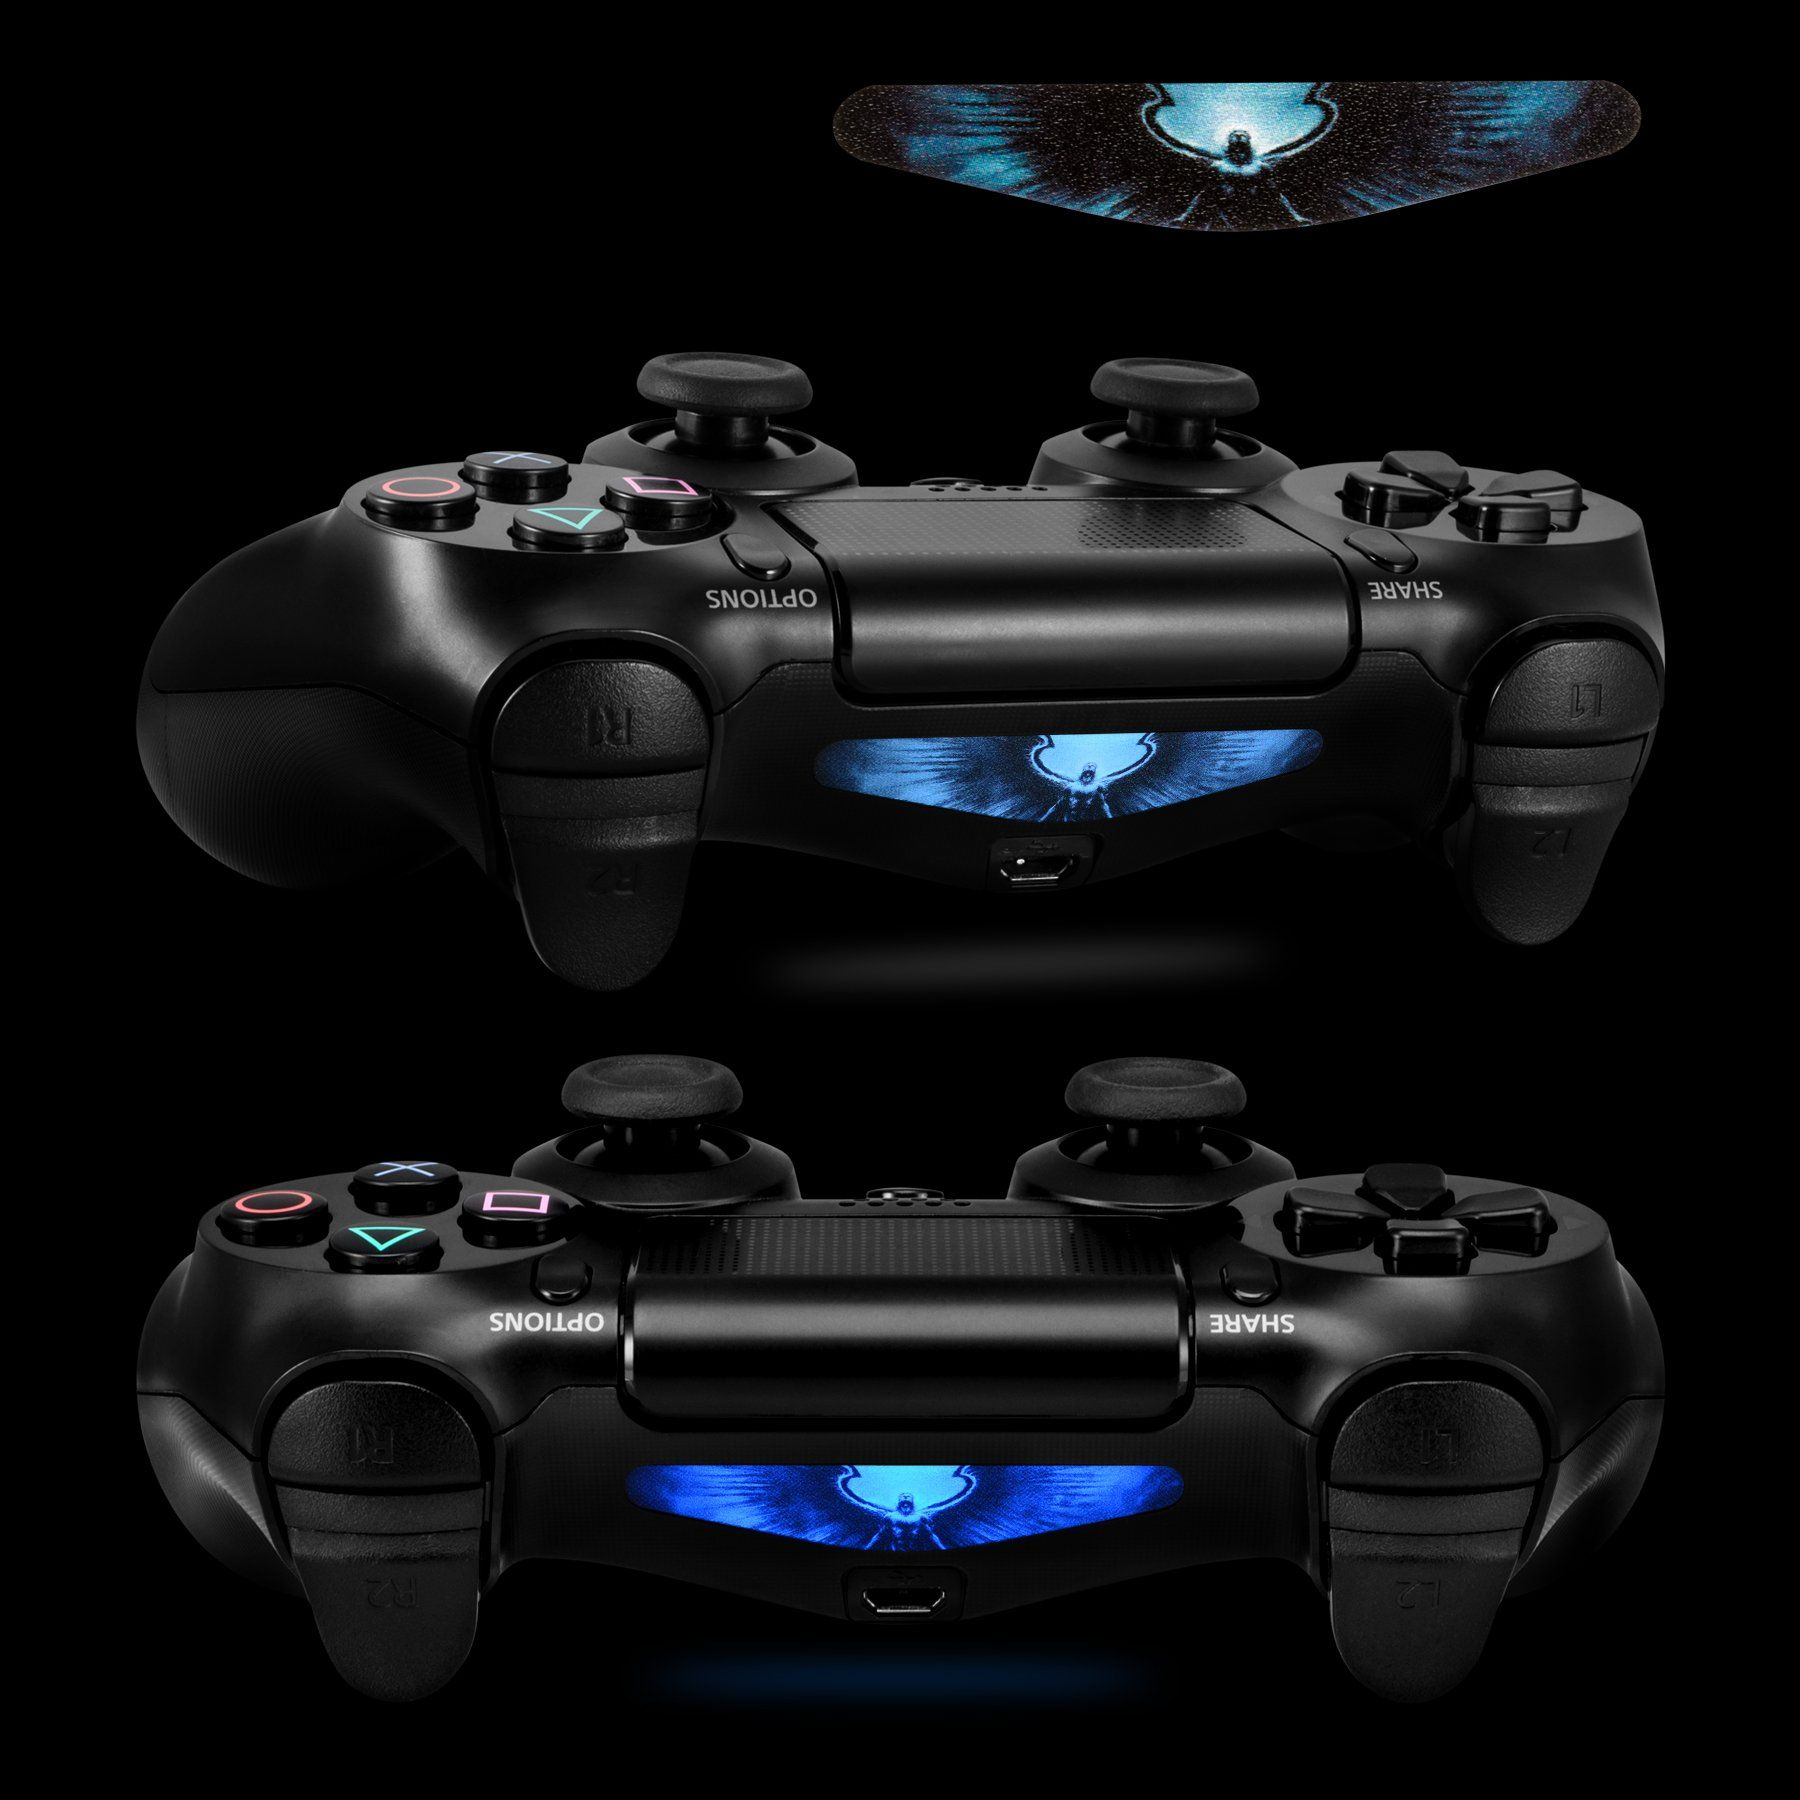 Extremerate 60 Pcs Set Custom Game Light Bar Vinyl Stickers Decal Led Lightbar Cover For Playstation 4 Dualshock 4 P Playstation Ps4 Pro Controller Ghost Light